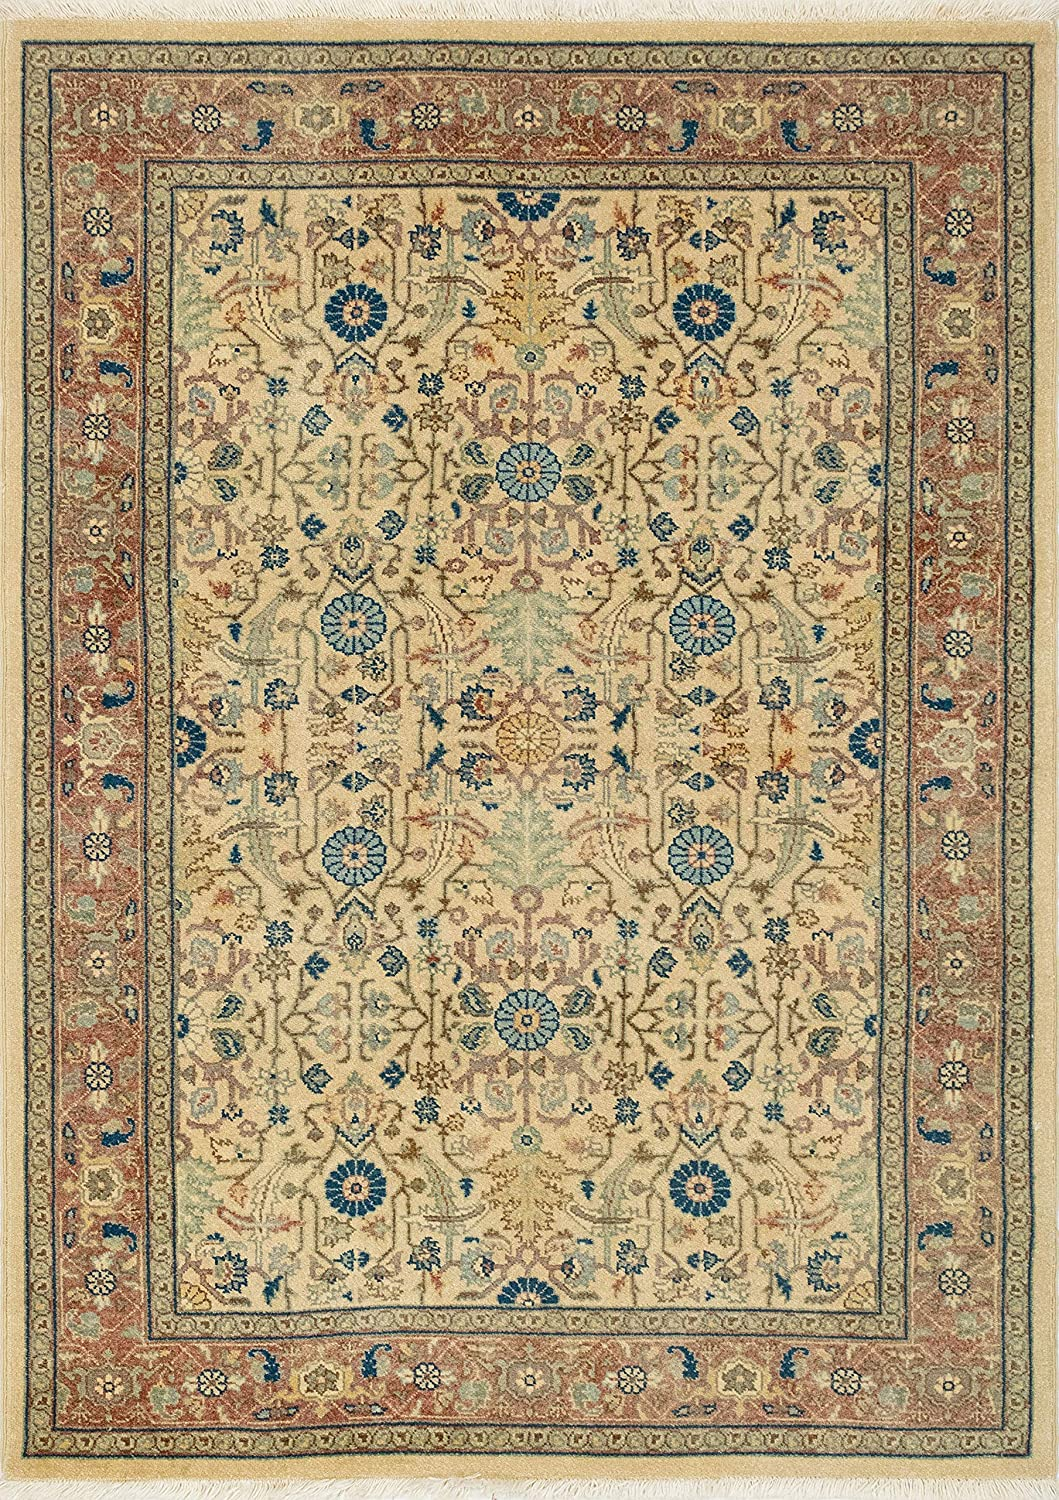 Noori Rug Turkish-Knotted Joshua Ivory Outlet sale feature 5'10 x Rust 4'3 shop